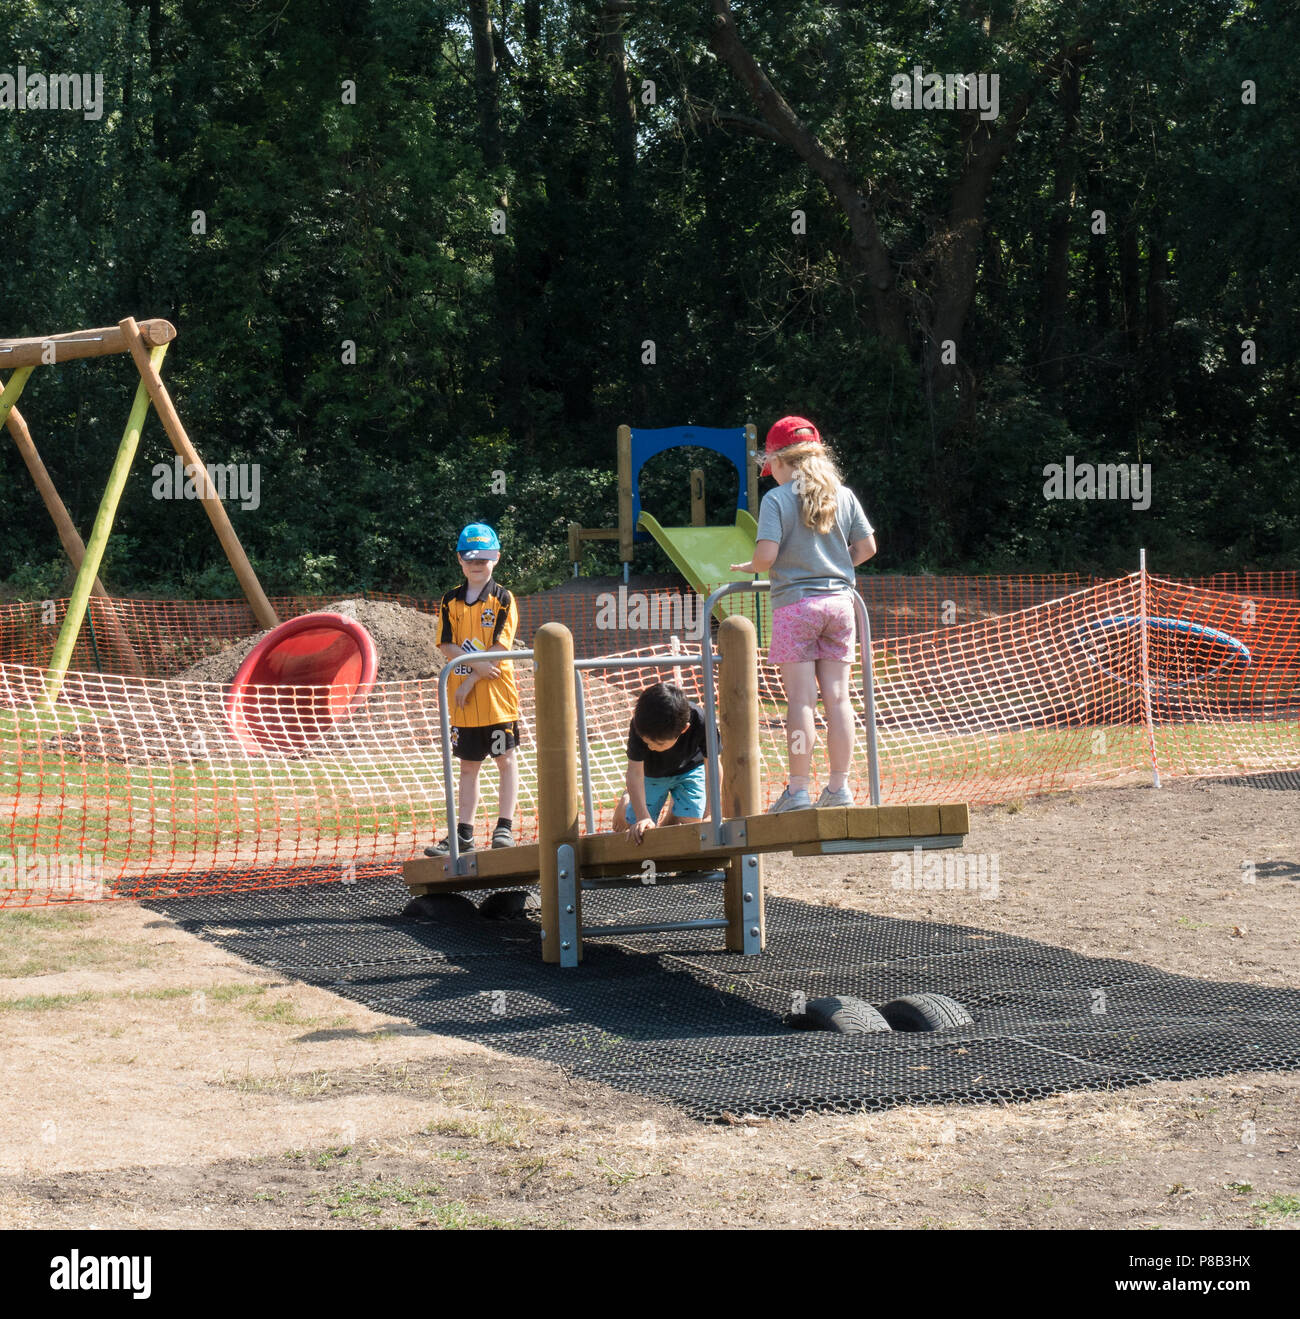 children-on-seesaw-P8B3HX.jpg